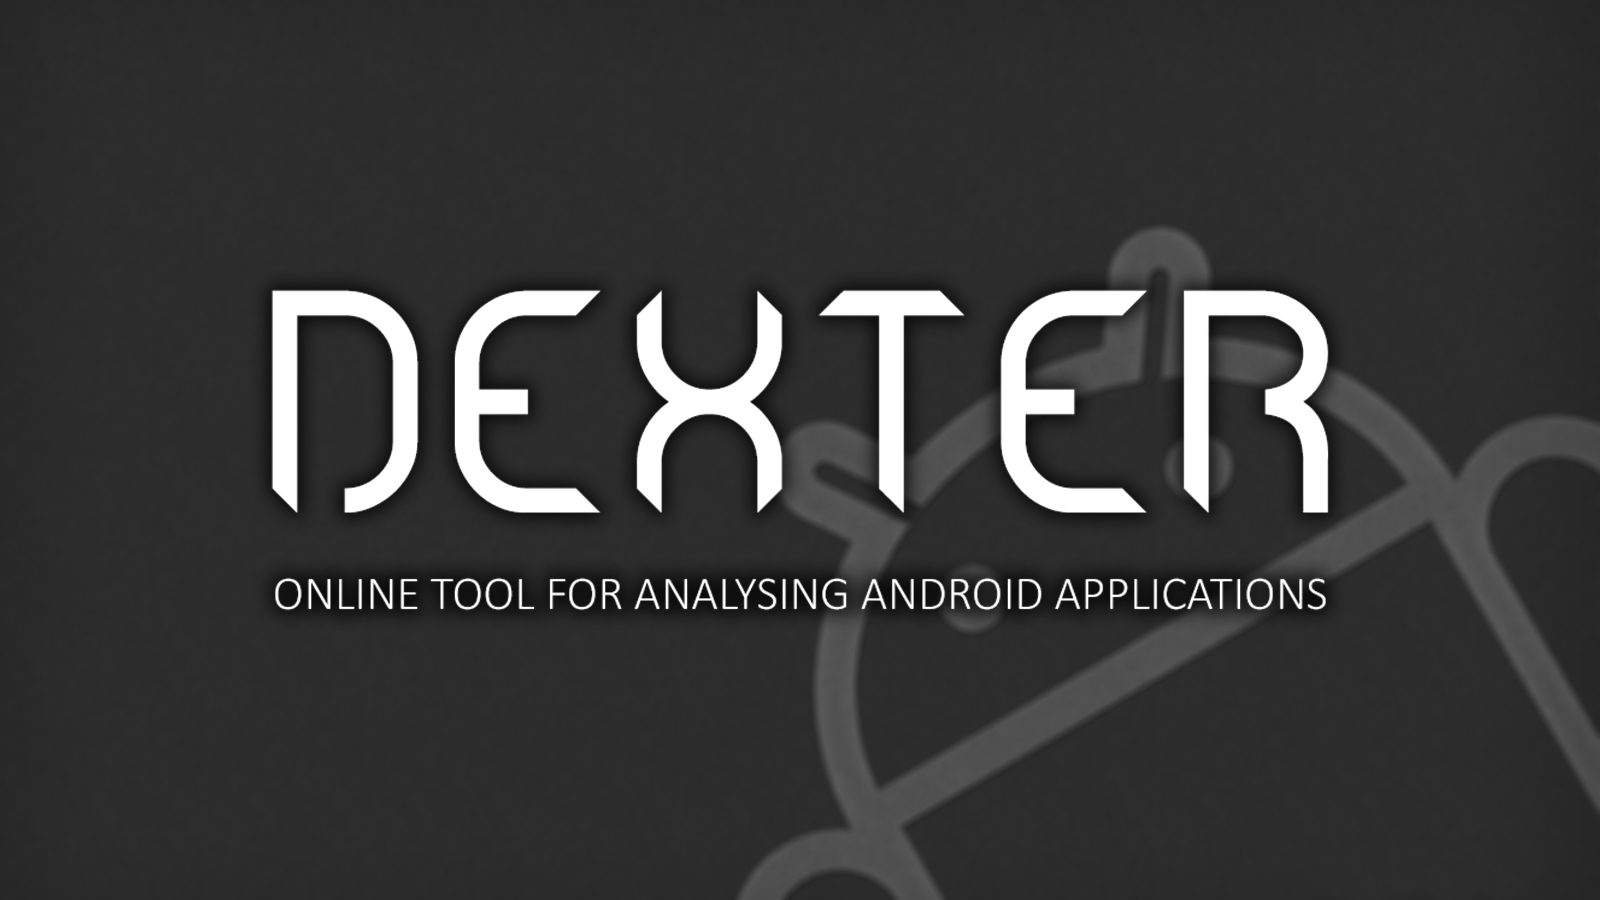 Dexter - Android App Analyser